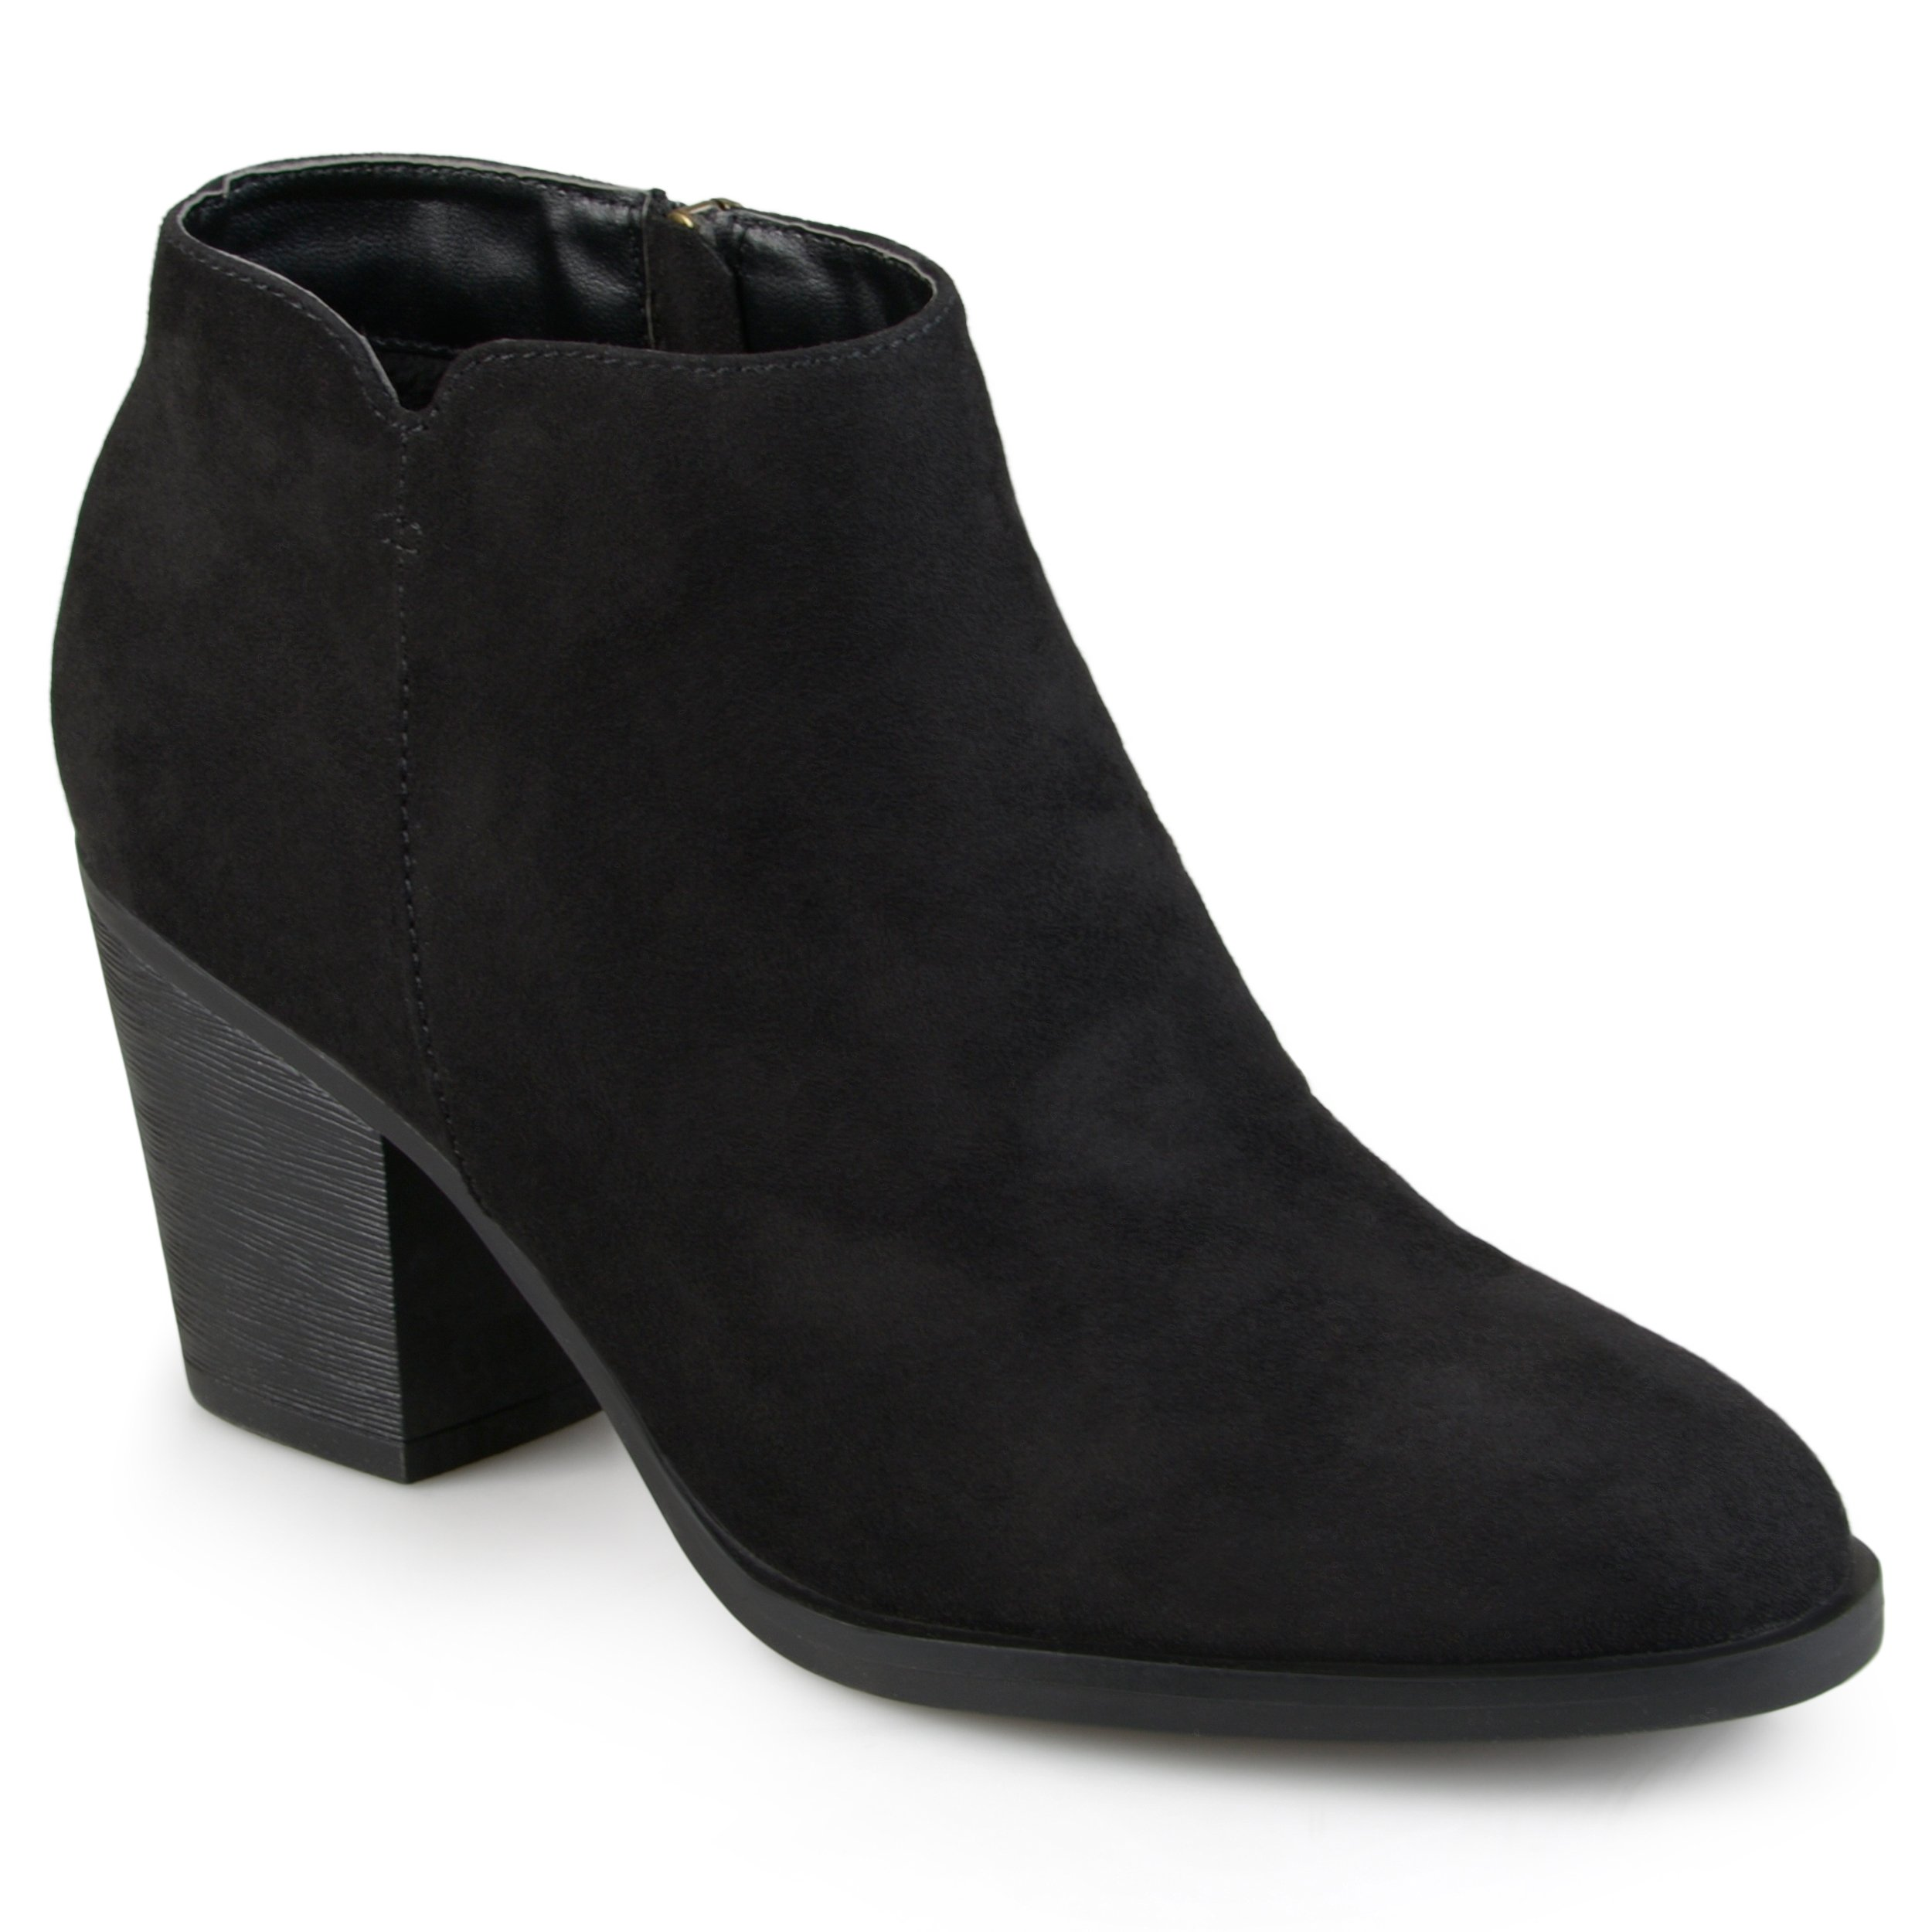 Journee Collection Womens High Heeled Round Toe Chunky Heel Ankle Booties Black, 7 Regular US